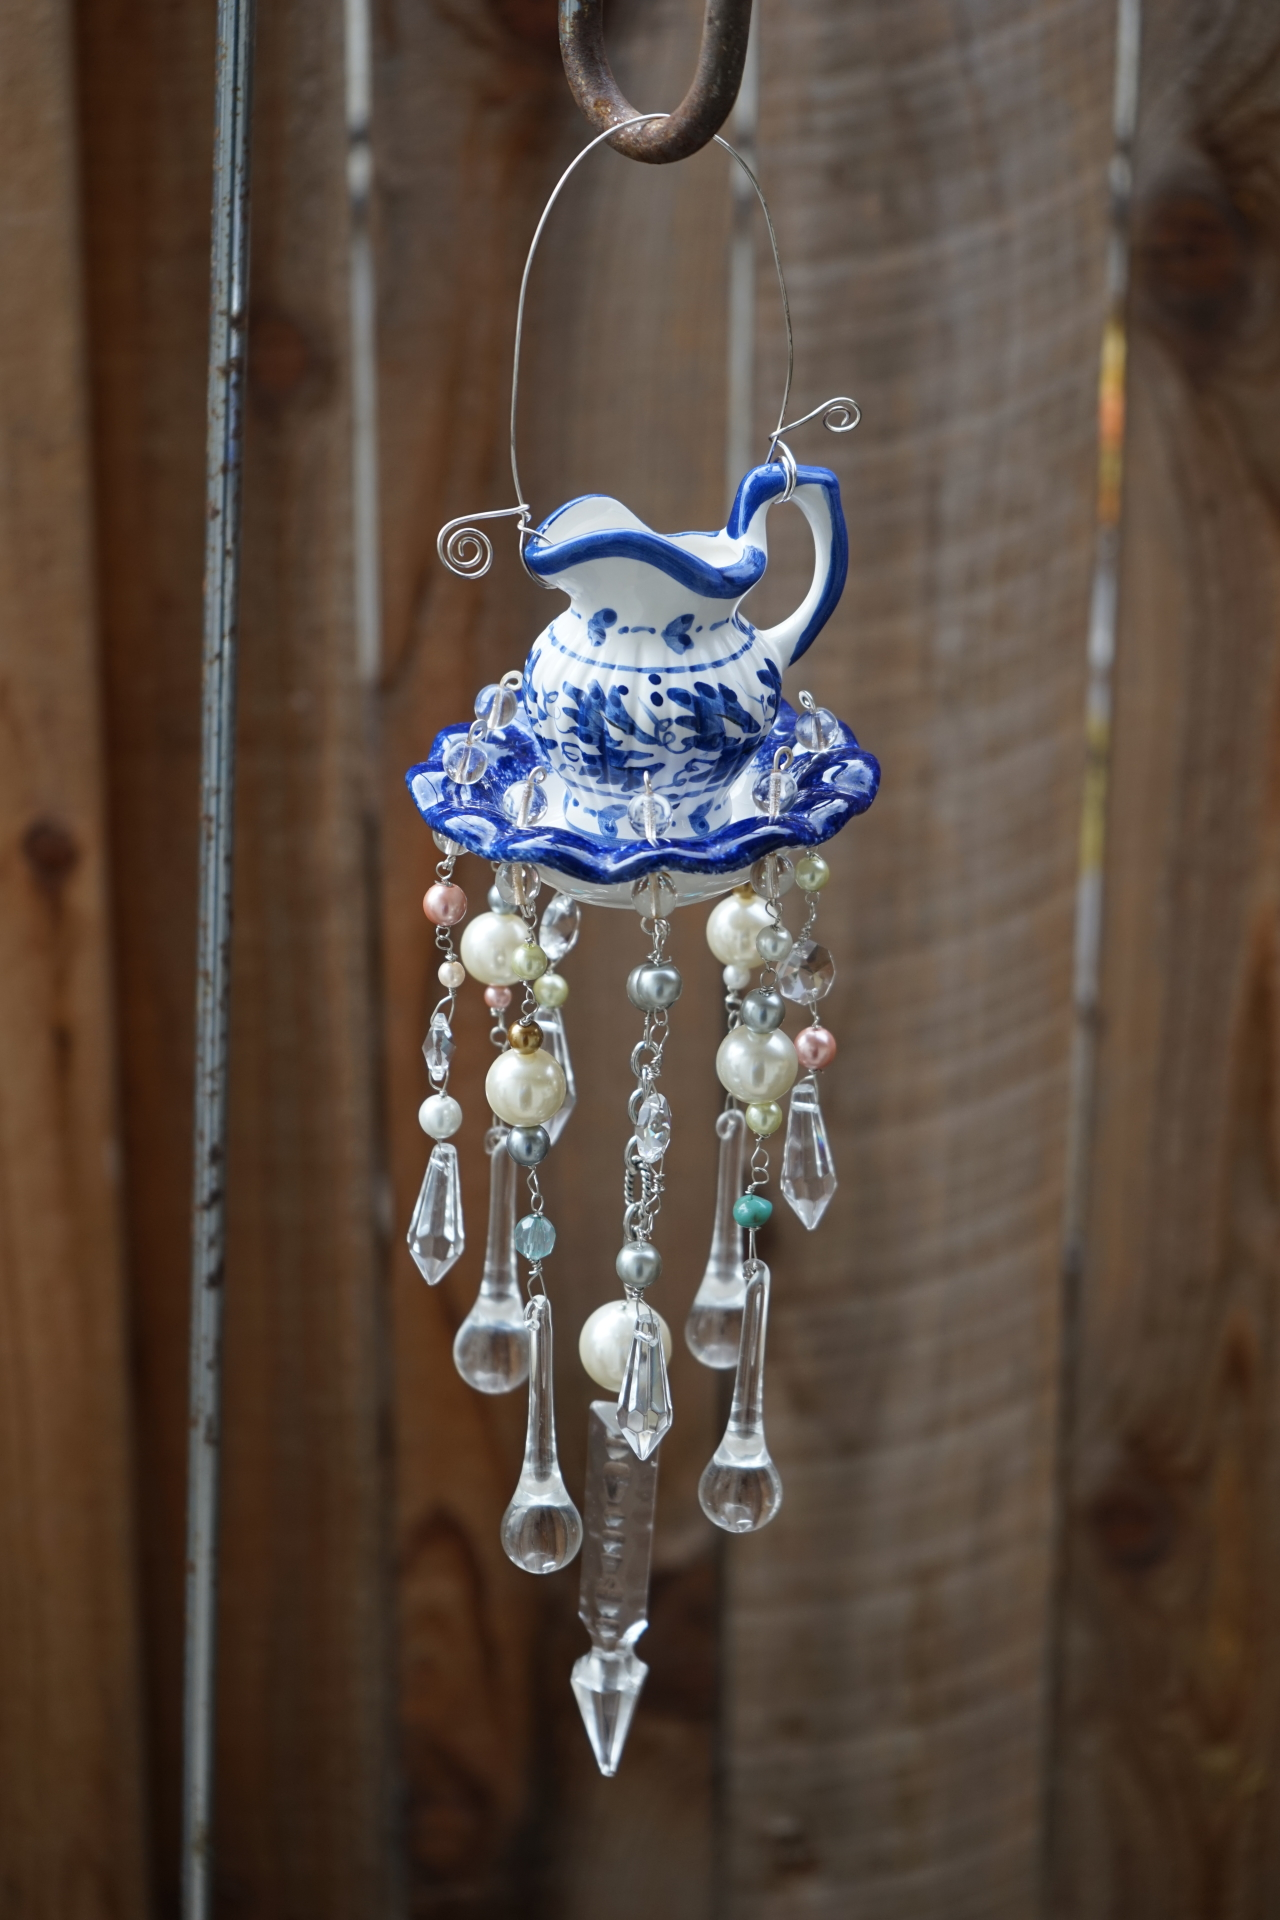 Blue pitcher and washbasin get a new life